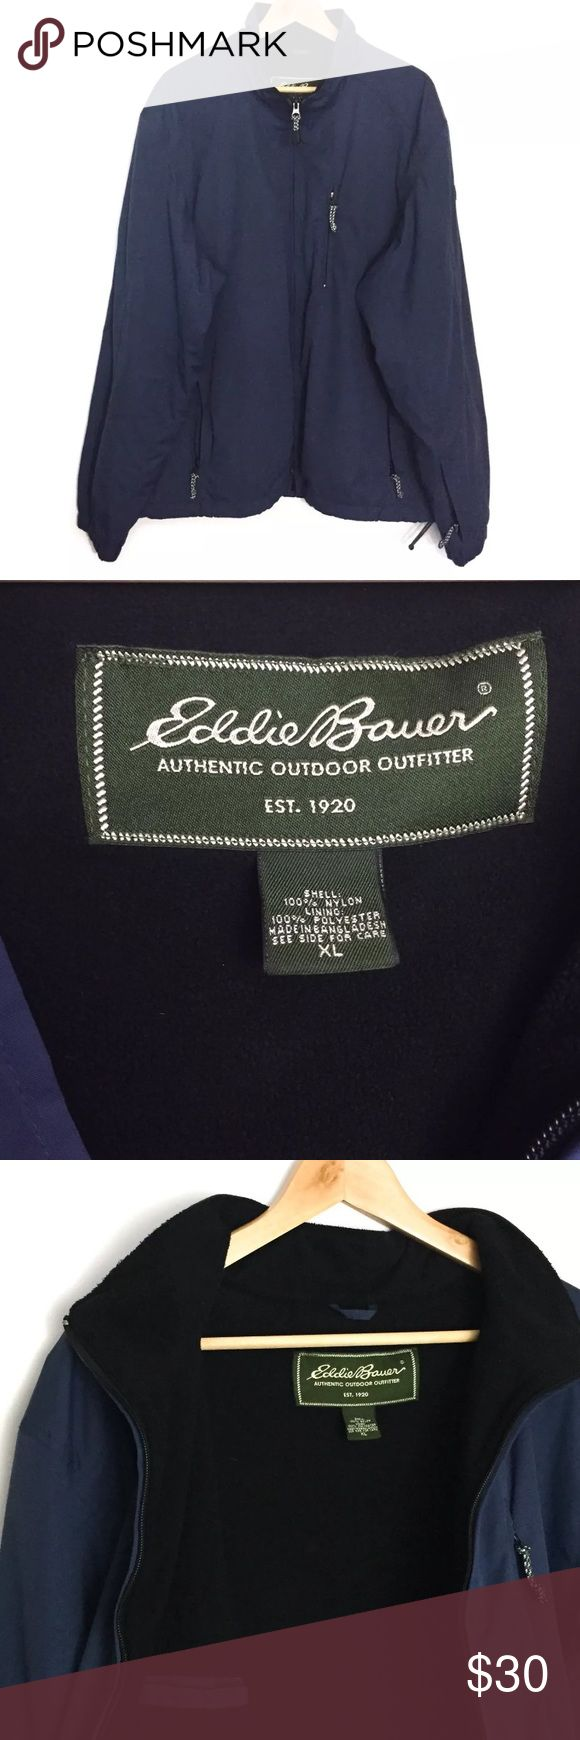 """Eddie Bauer Authentic Outdoor Outfitter Jacket Still in great condition. No flaws anywhere on the jacket. Great for outdoors adventures. Nylon shell, polyester lining. 4 pockets. Elastic cuffs.  Flat lay measurements: Shoulders: 22"""" Chest: 27"""" Sleeves:27"""" Cuffs: 5.5"""" Length: 29"""" Width: 25.5"""" Eddie Bauer Jackets & Coats"""